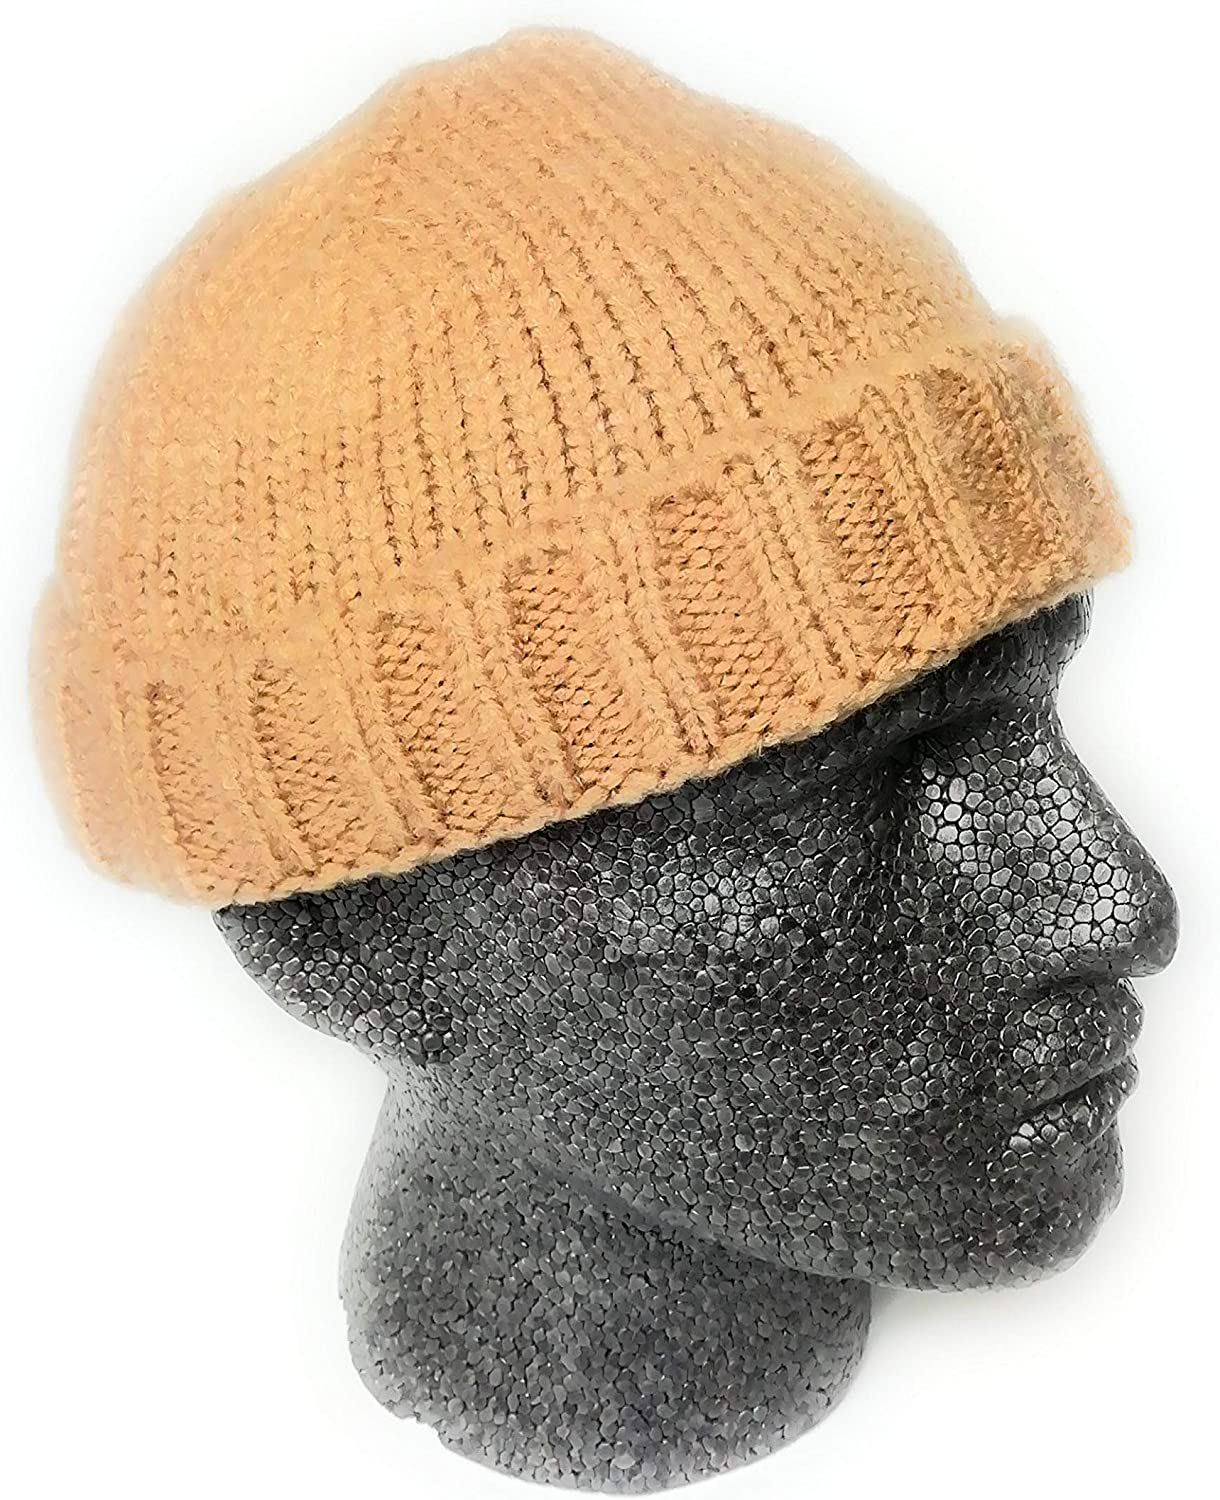 Rust Wigwam Knitted fisherman trawler Skully beanie Hat Vintage style mens womans Hipster beanie hat